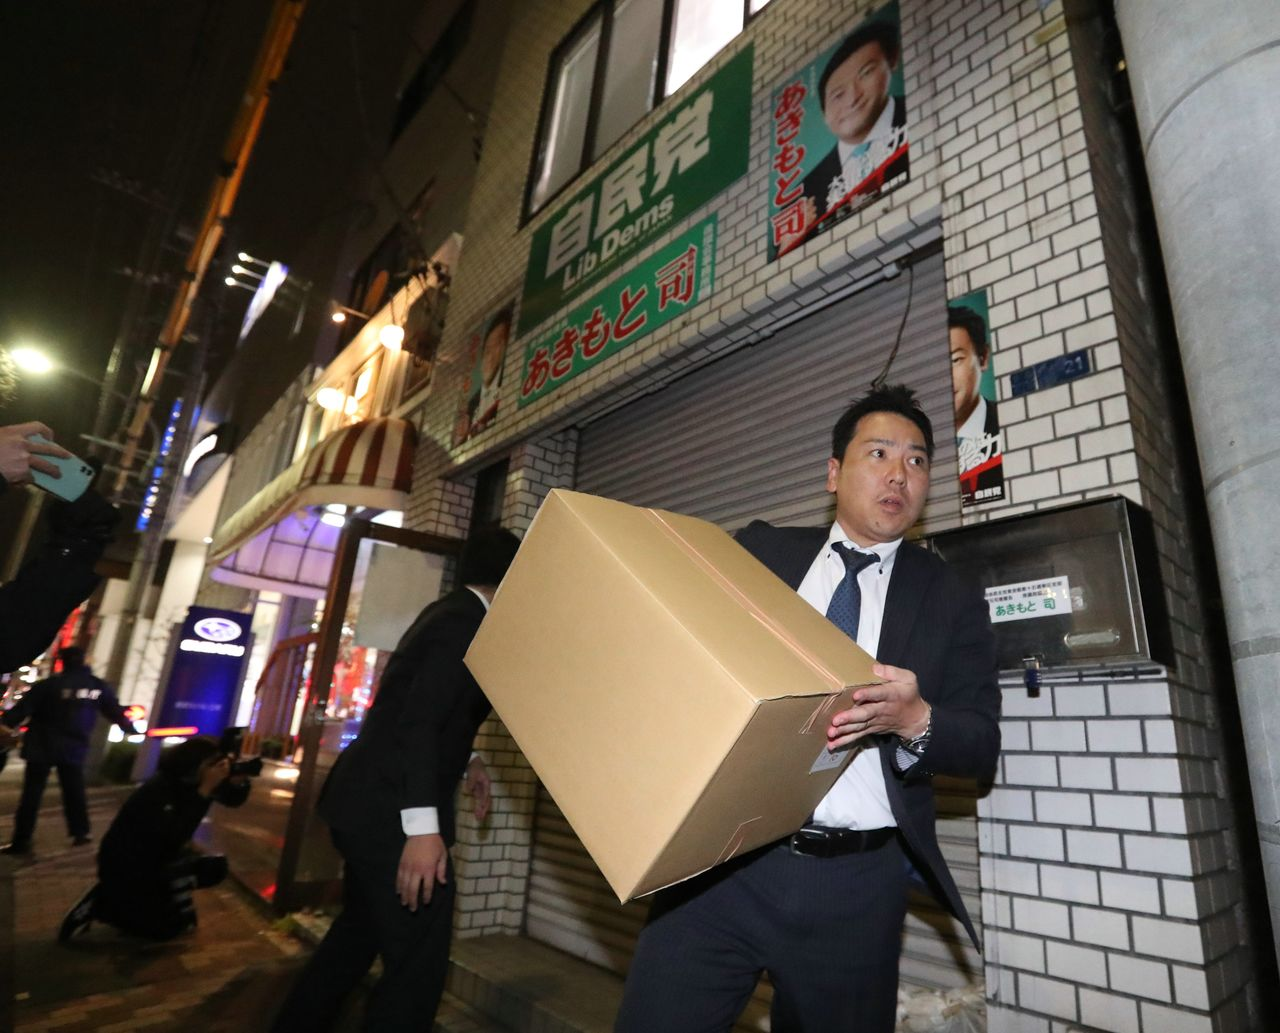 An official from the Tokyo District Public Prosecutors Office carries a box containing confiscated items from the office of House of Representatives member Akimoto Tsukasa in Kōtō ward, Tokyo, on December 19, 2019. (© Jiji)